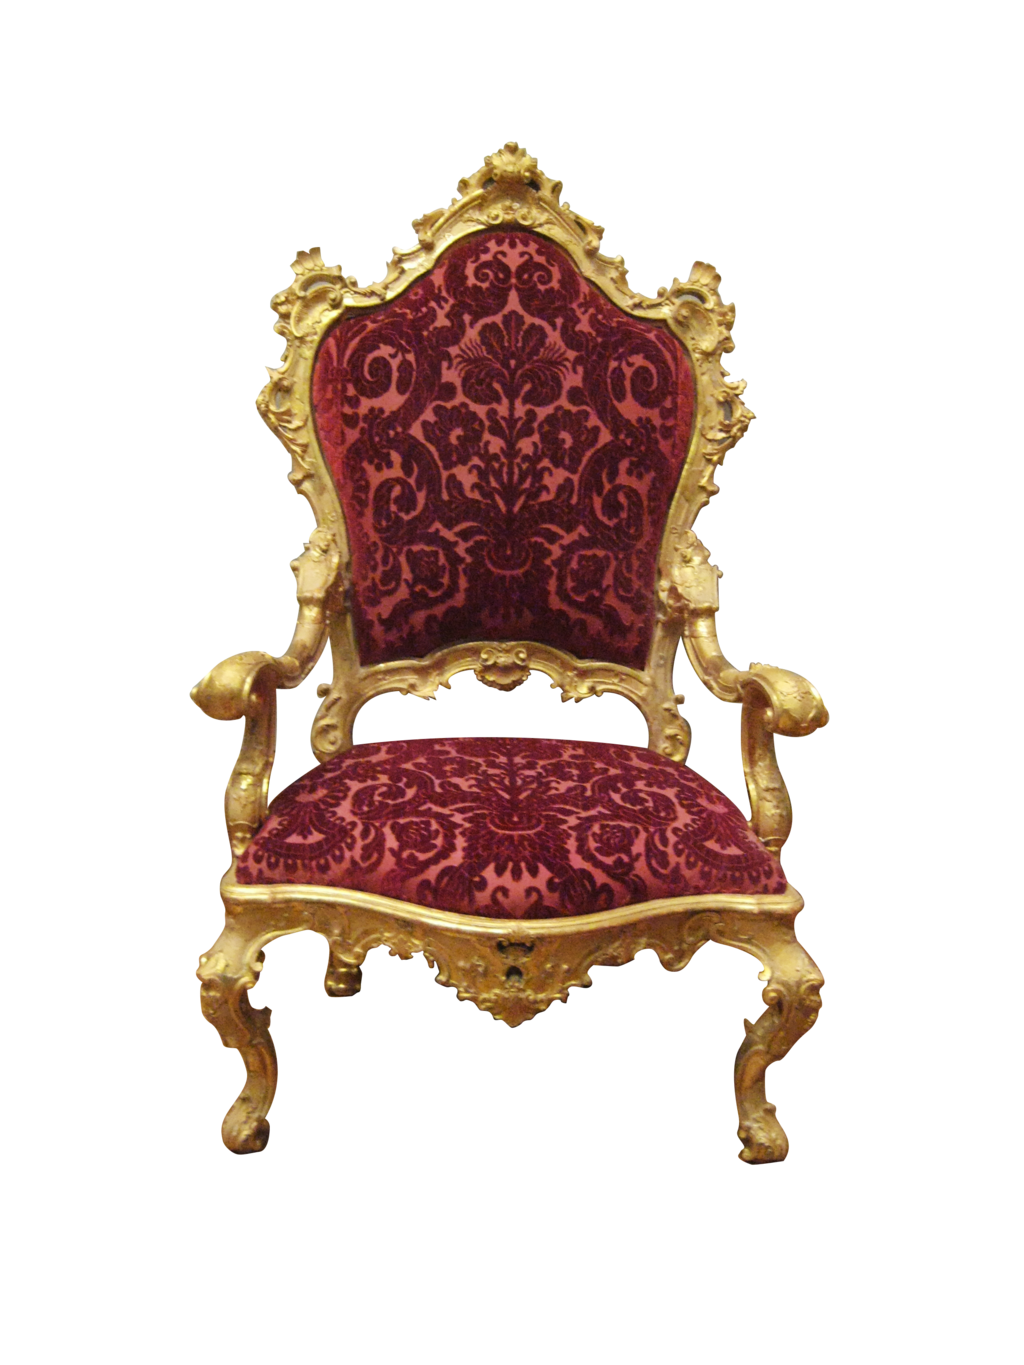 Royal chairs clipart graphic library stock Pin by Jersey Virago on Warrior princess in 2019 | Royal ... graphic library stock